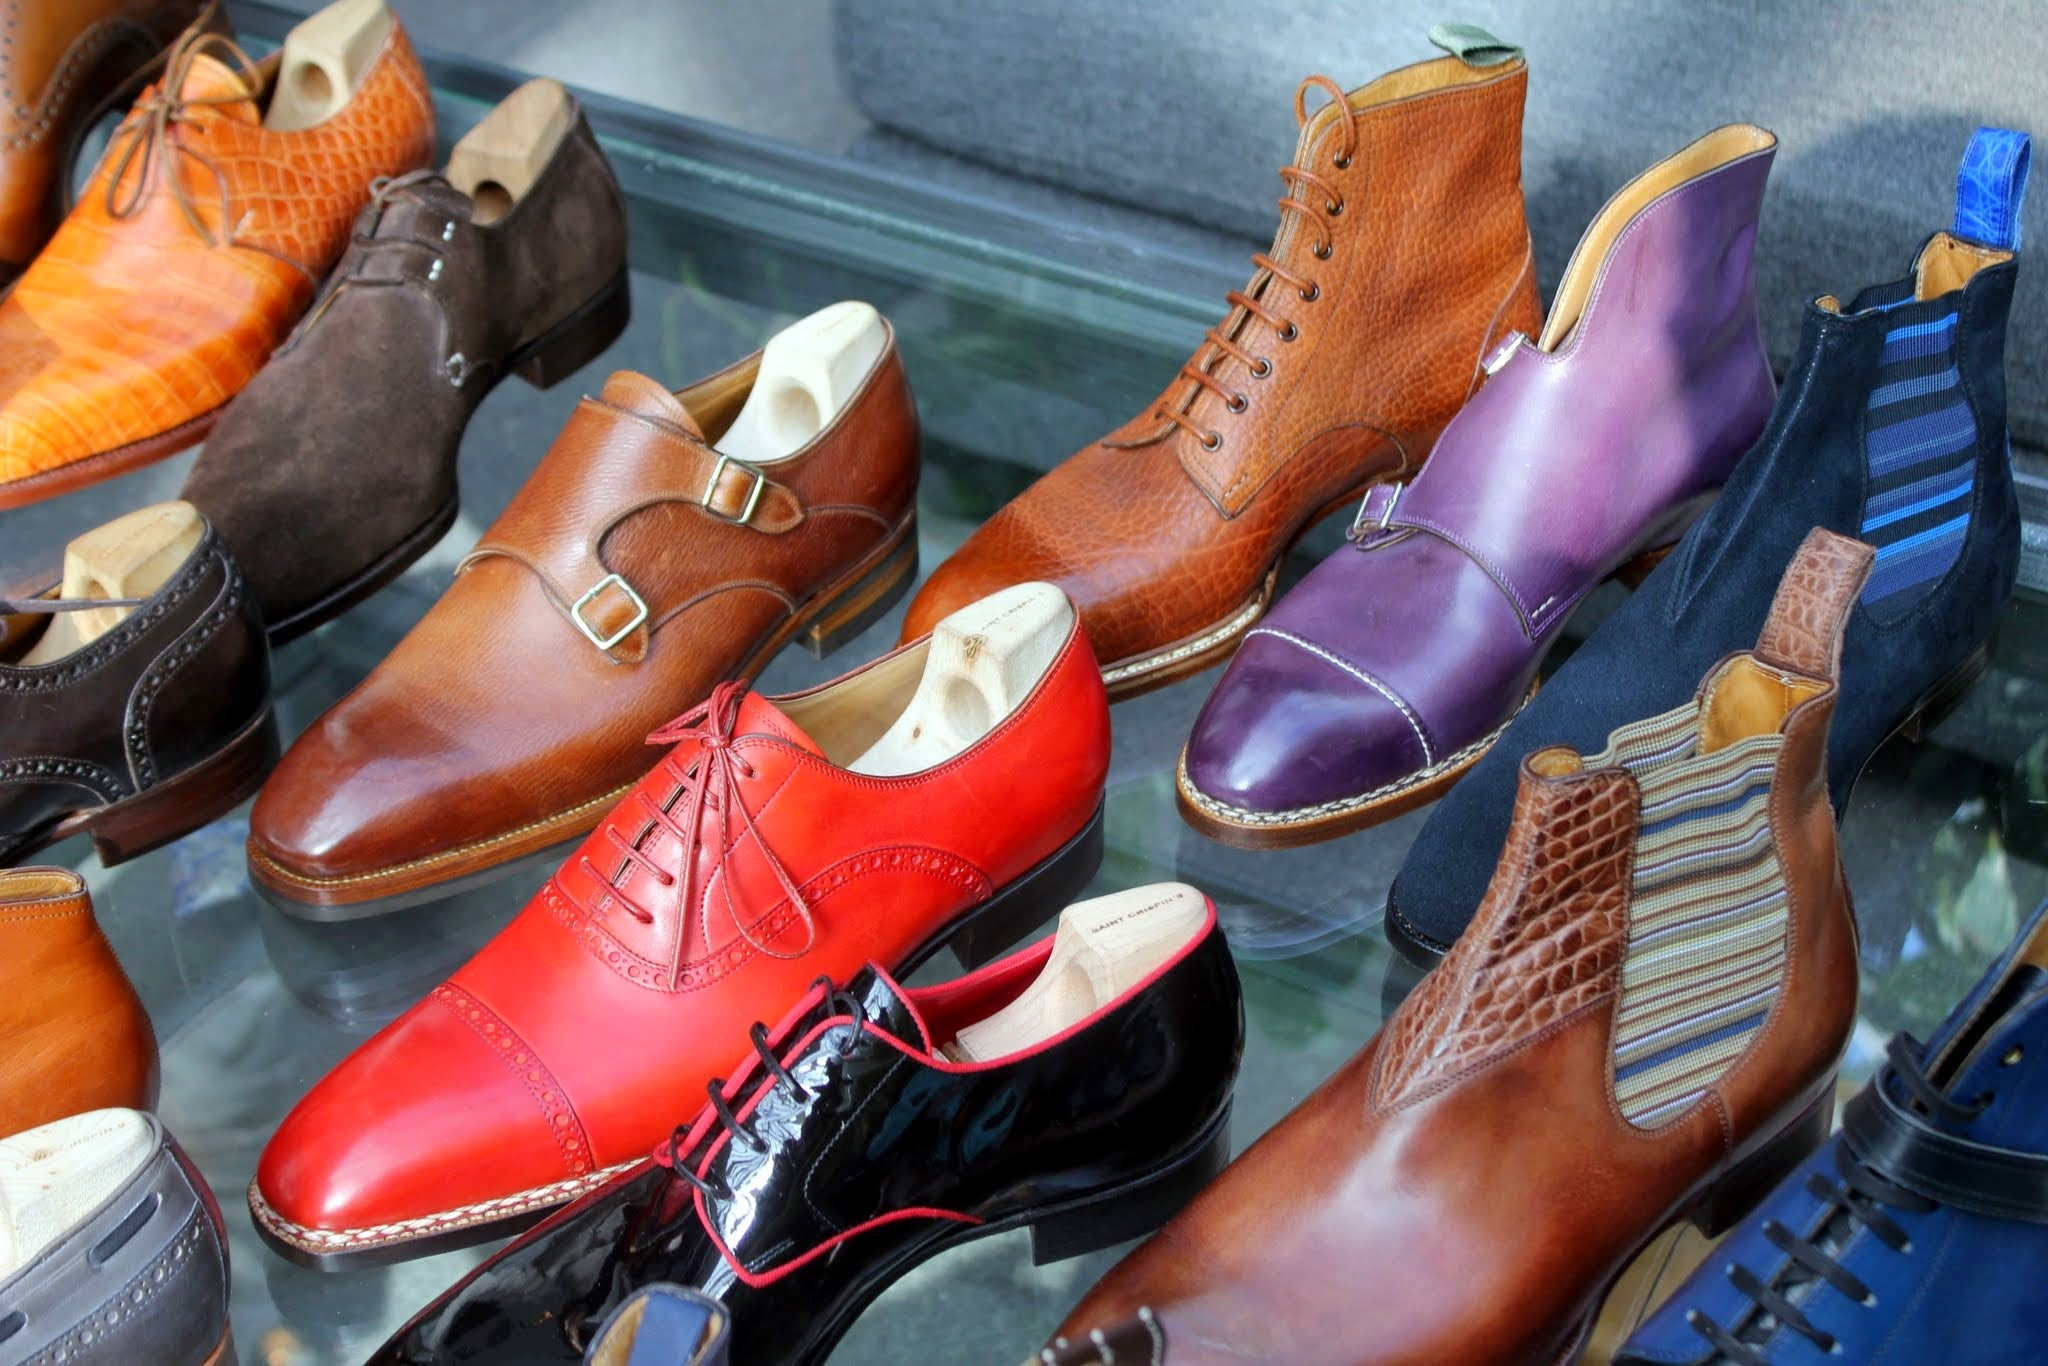 range-of-saint-crispins-shoes